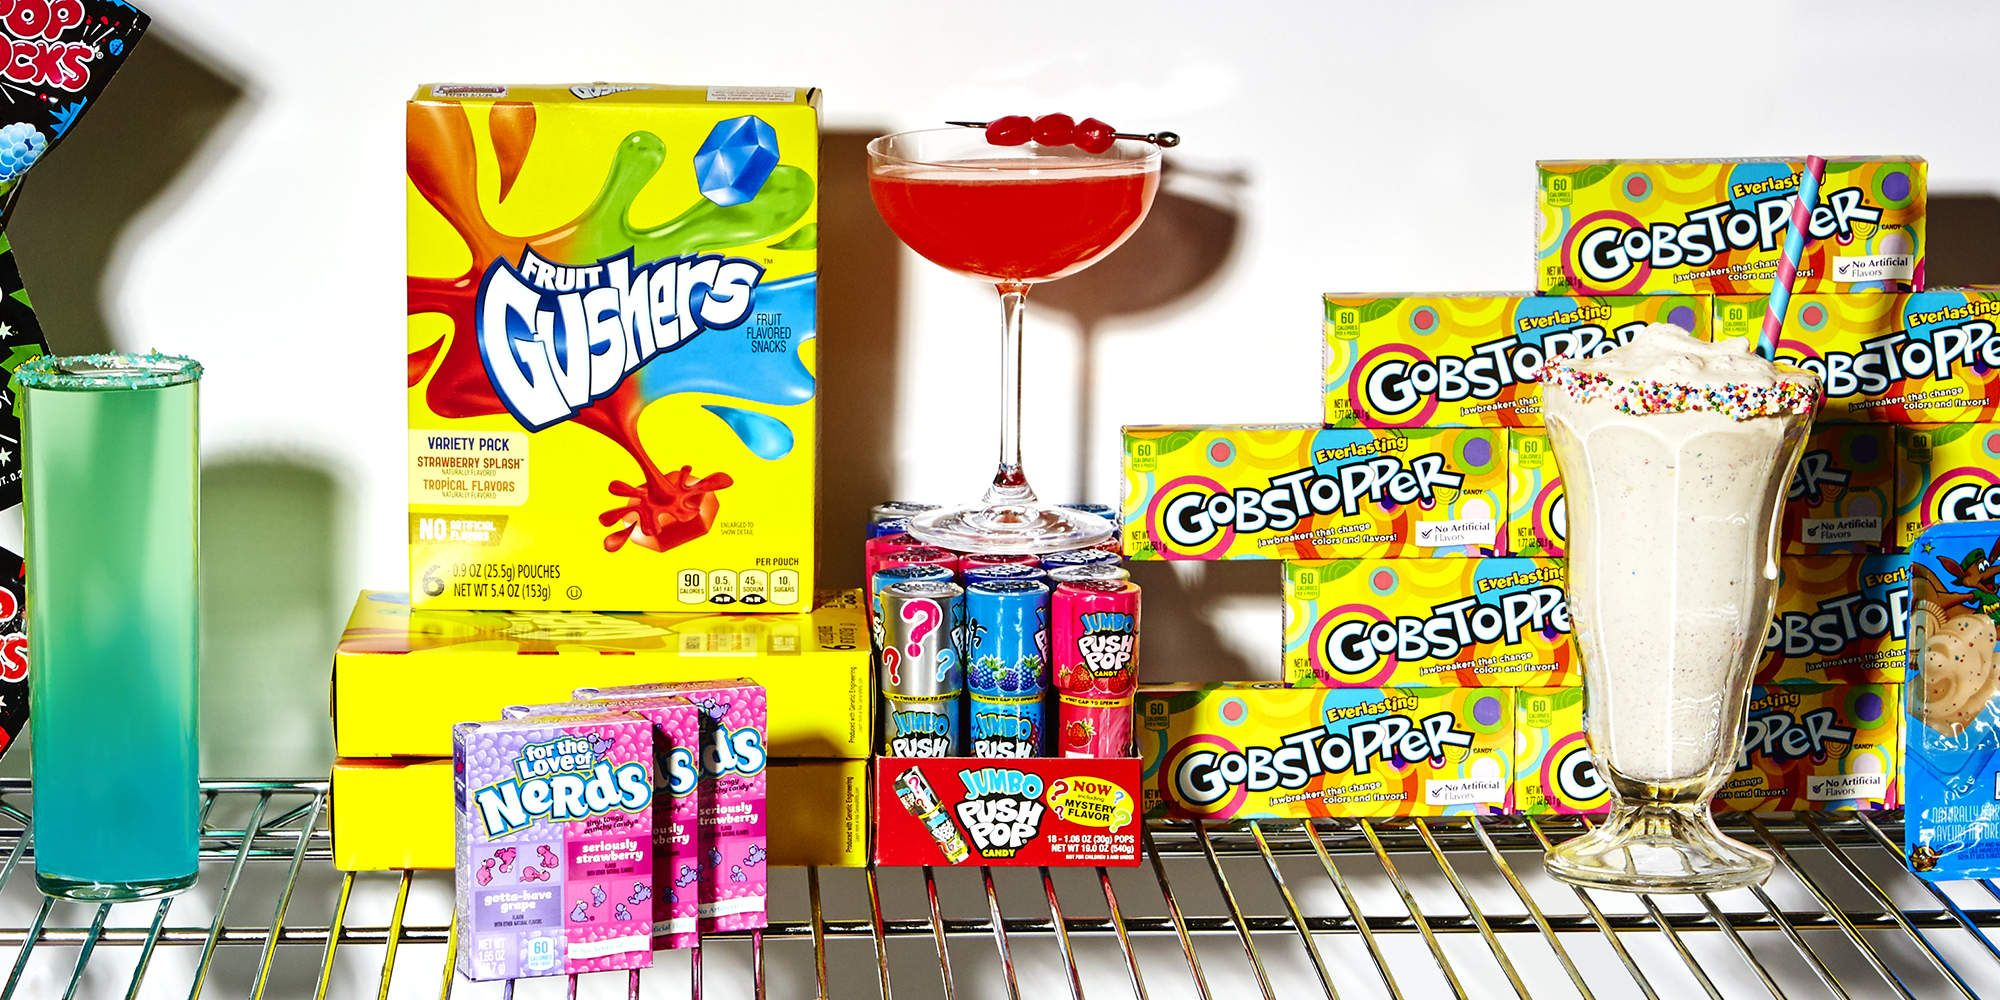 Relive Your Childhood With These 90s Candy Cocktails Candy Cocktails 90s Theme 90s Candy